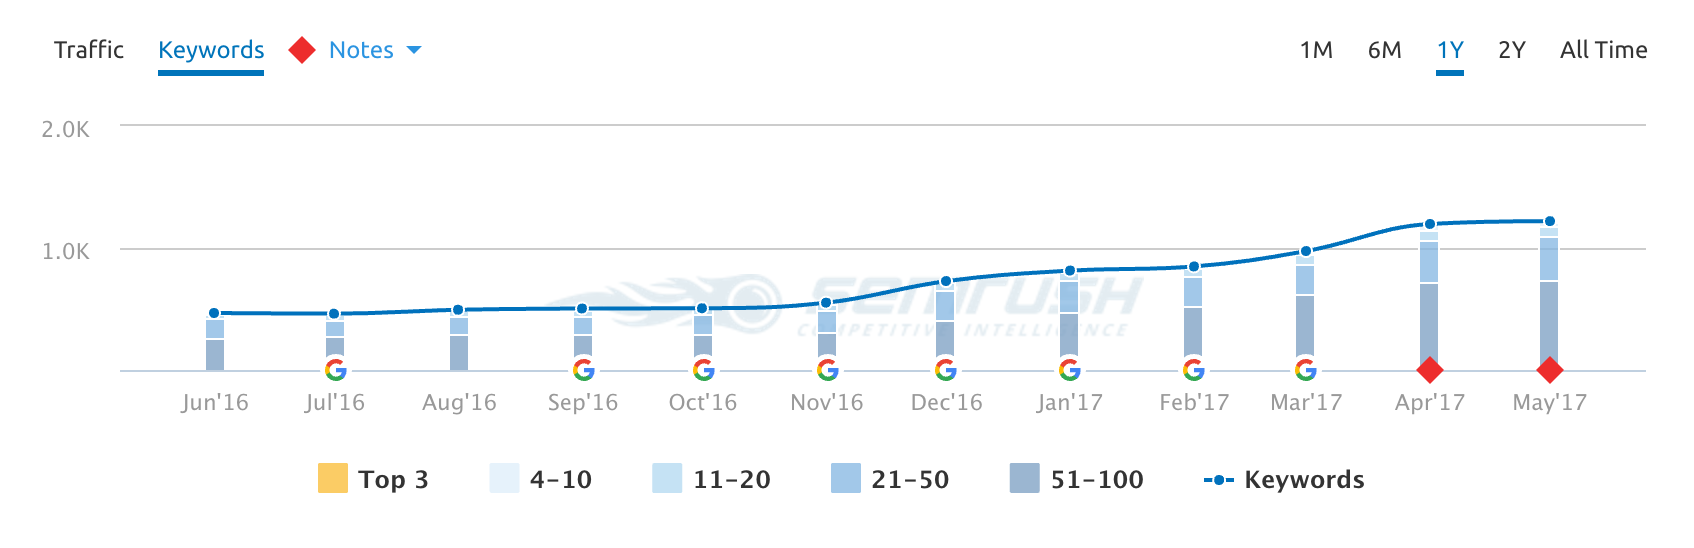 Brehob Keywords Analytics: The number of keywords ranking over the last year, as reported by SEMrush